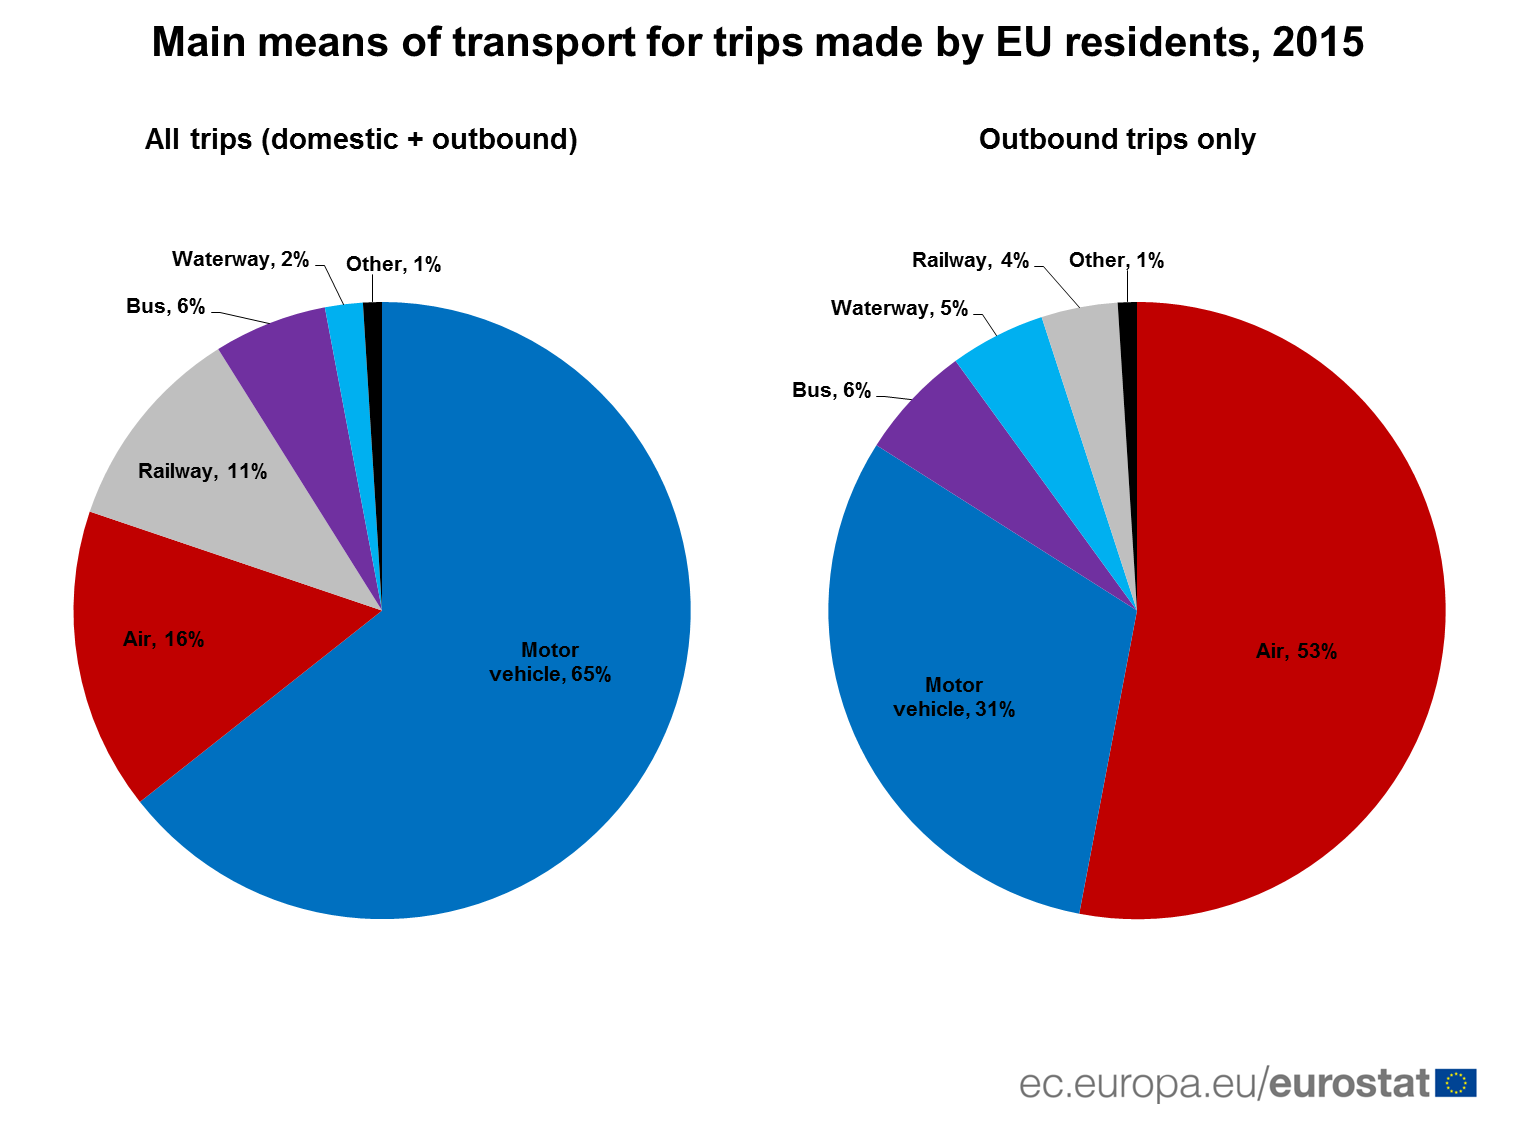 Main means of transport for trips made by EU residents, 2015